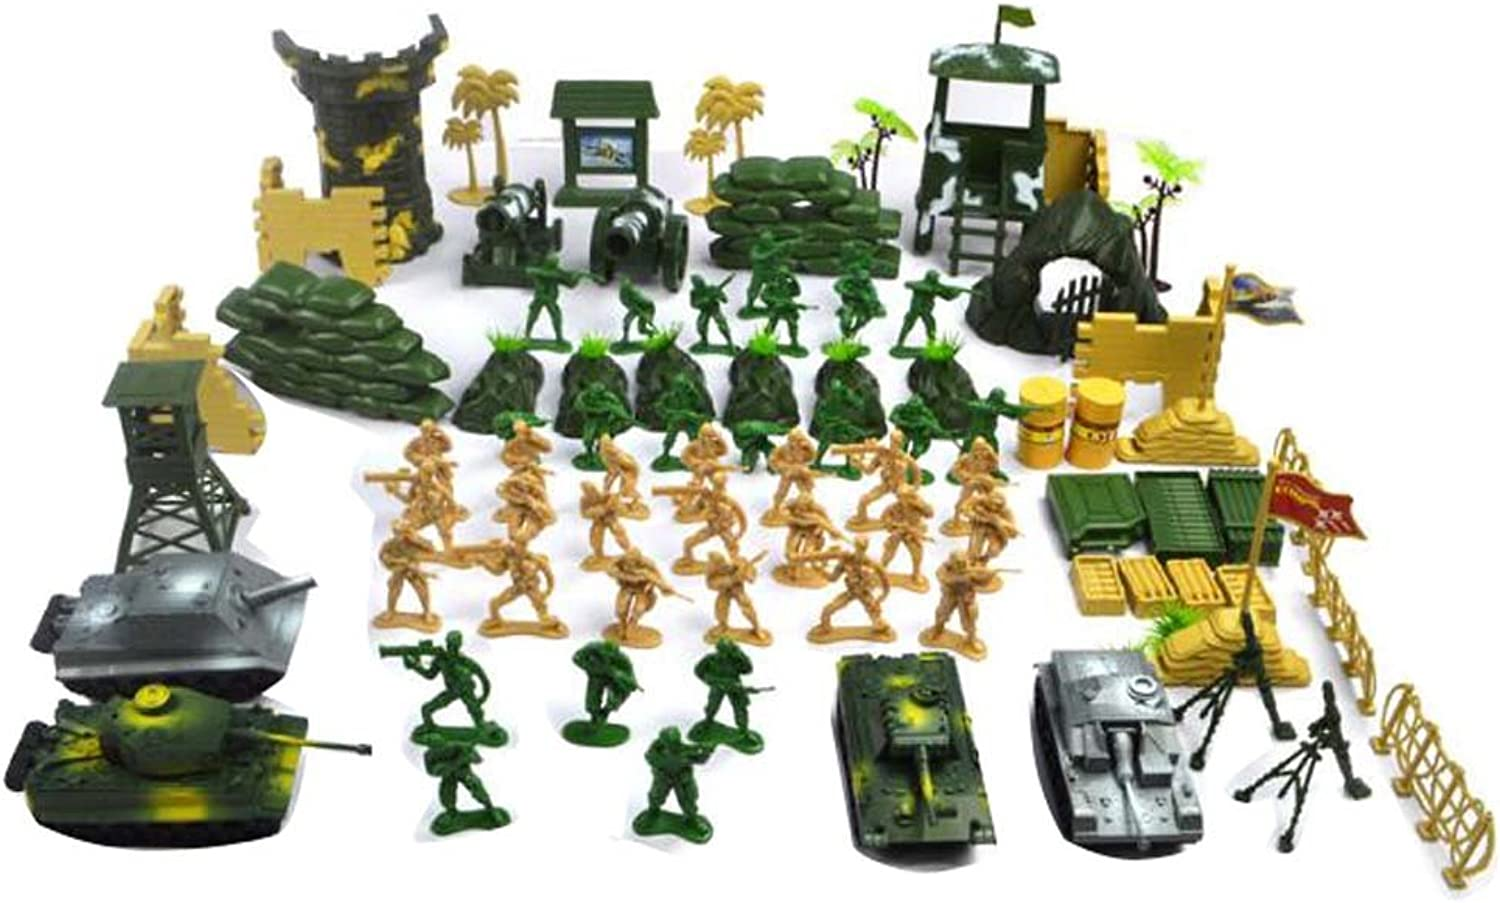 Sand Table Model Toy Cars Trucks Tank kids Toy Plastic Soldiers Gifts-100 PC